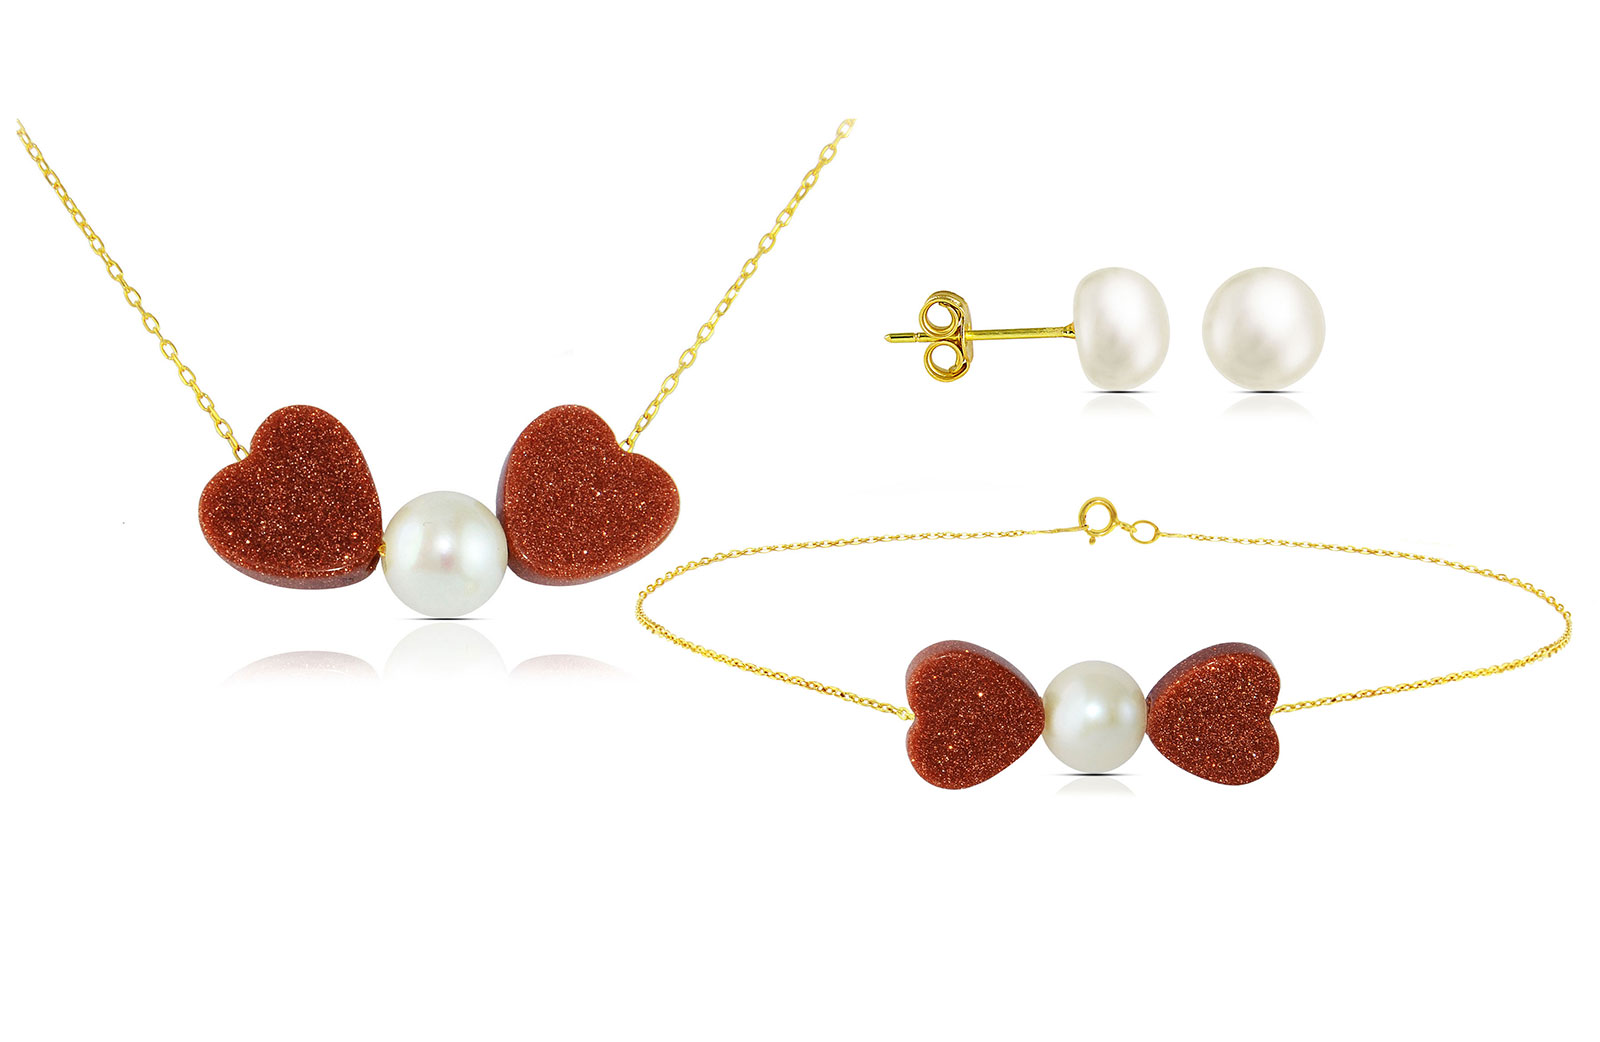 Vera Perla  18K Solid Gold Heart Sunstones and Pearl Necklace and Bracelet + 18K Gold 7mm Pearl Earrings